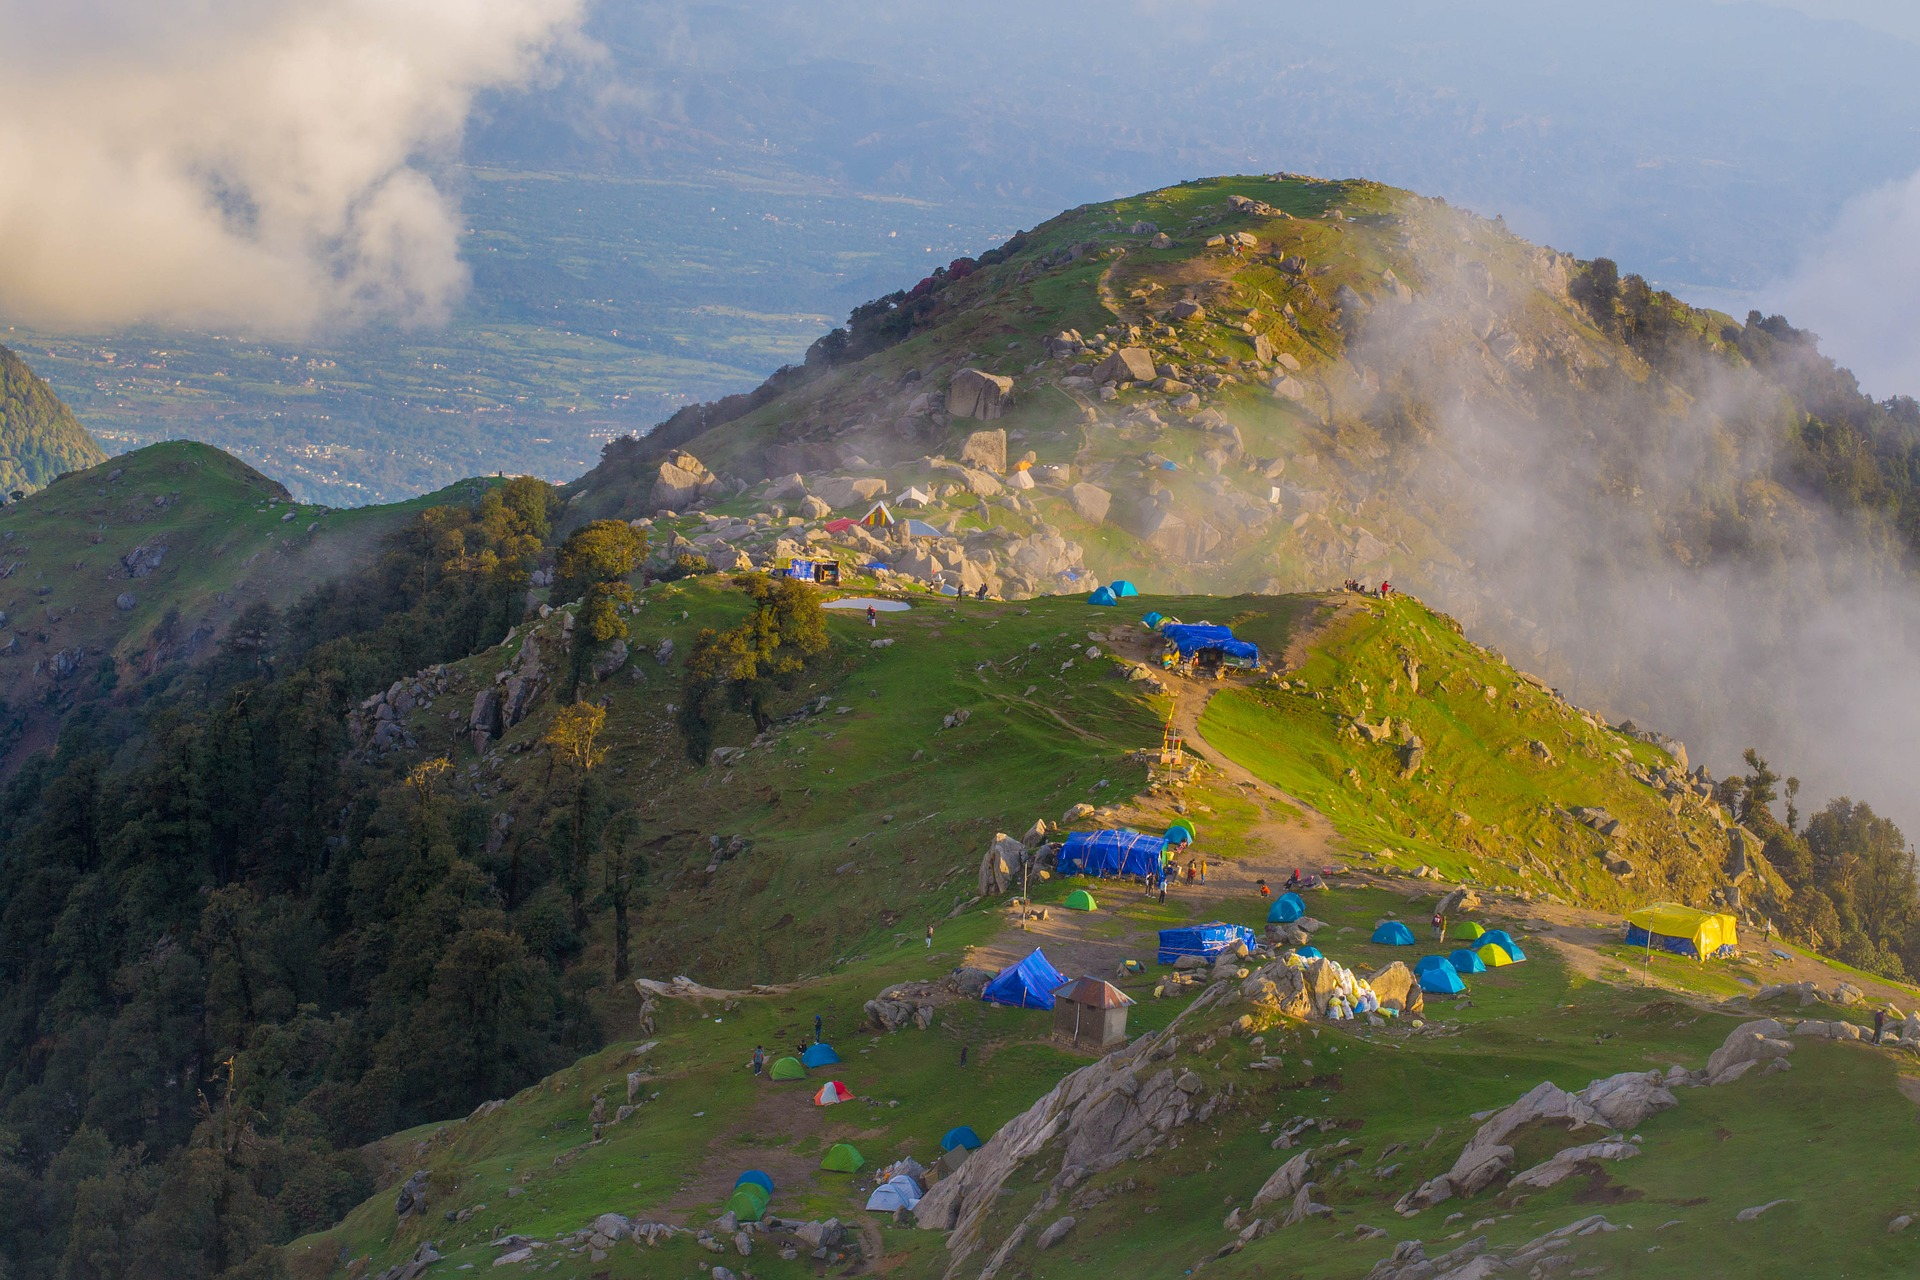 Triund | Above 14000 ft | Forktail Villa | Camping